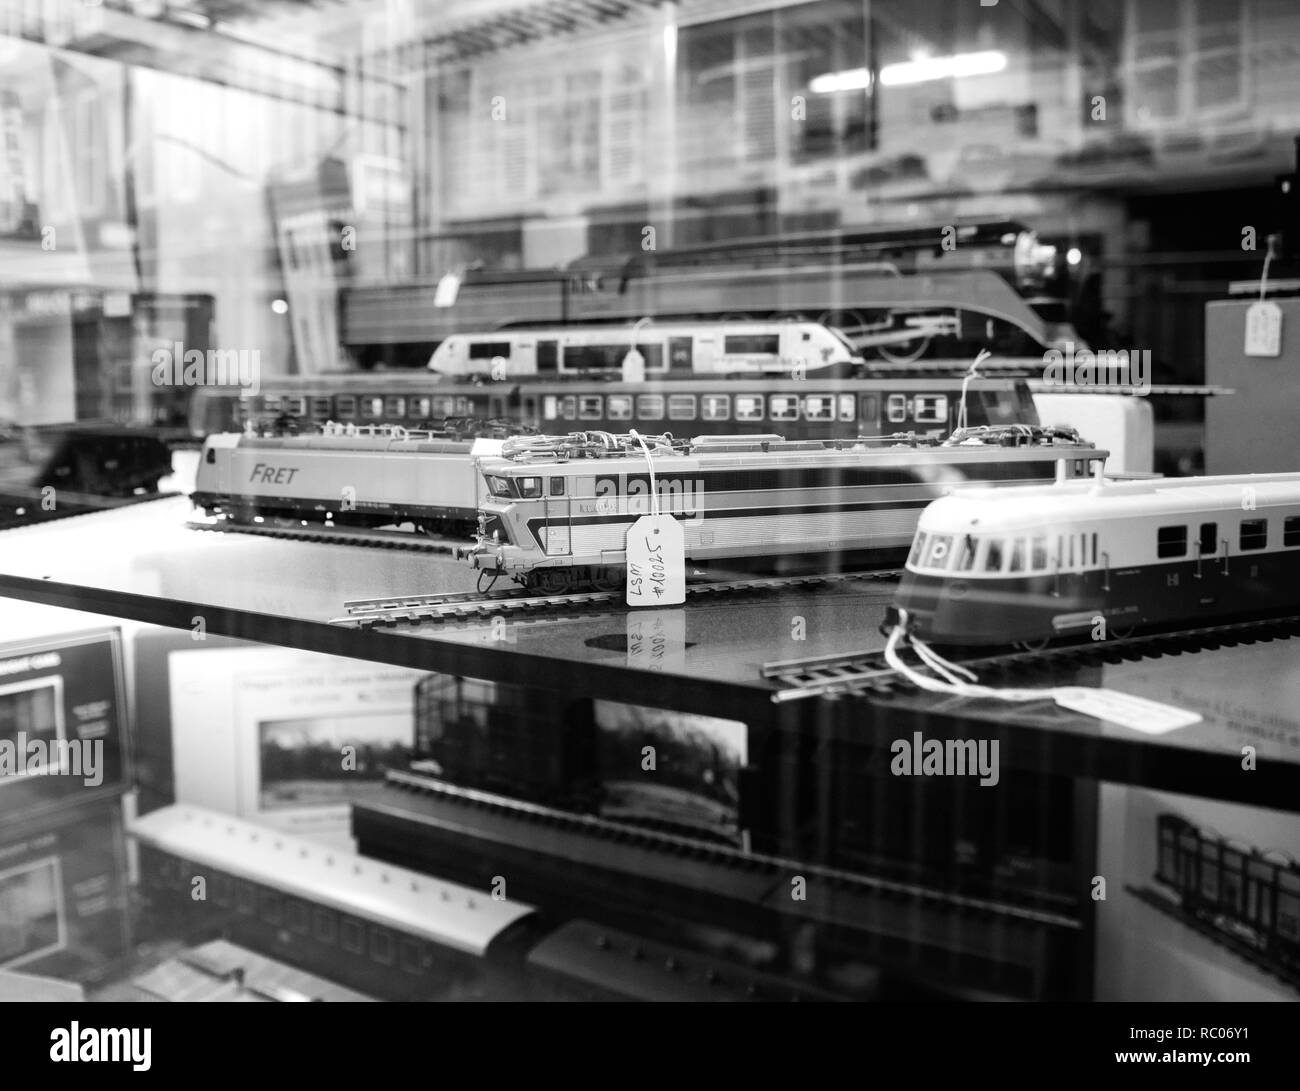 PARIS, FRANCE - JAN 30, 2018: Store window facade selling multiple toy collectible model trains featuring all railways in the world in central Paris, France black and white  - Stock Image